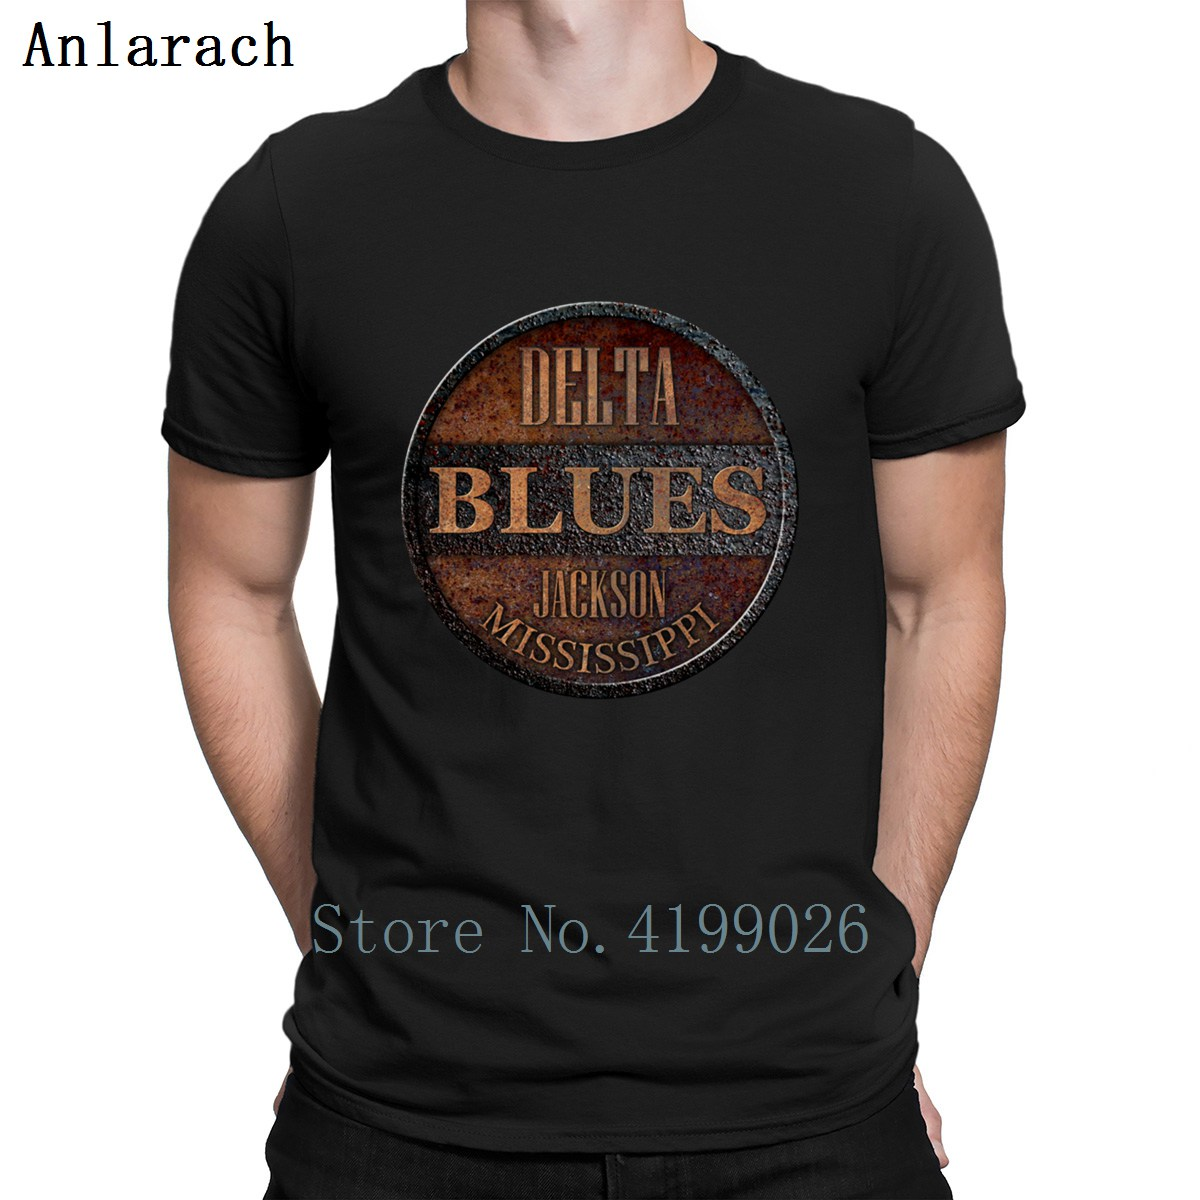 Rusty Deltar Blues Jackson T Shirt New Fashion Leisure Crazy Character T Shirts Clever Hip Hop Size S-3xl Tee Shirt Sunlight